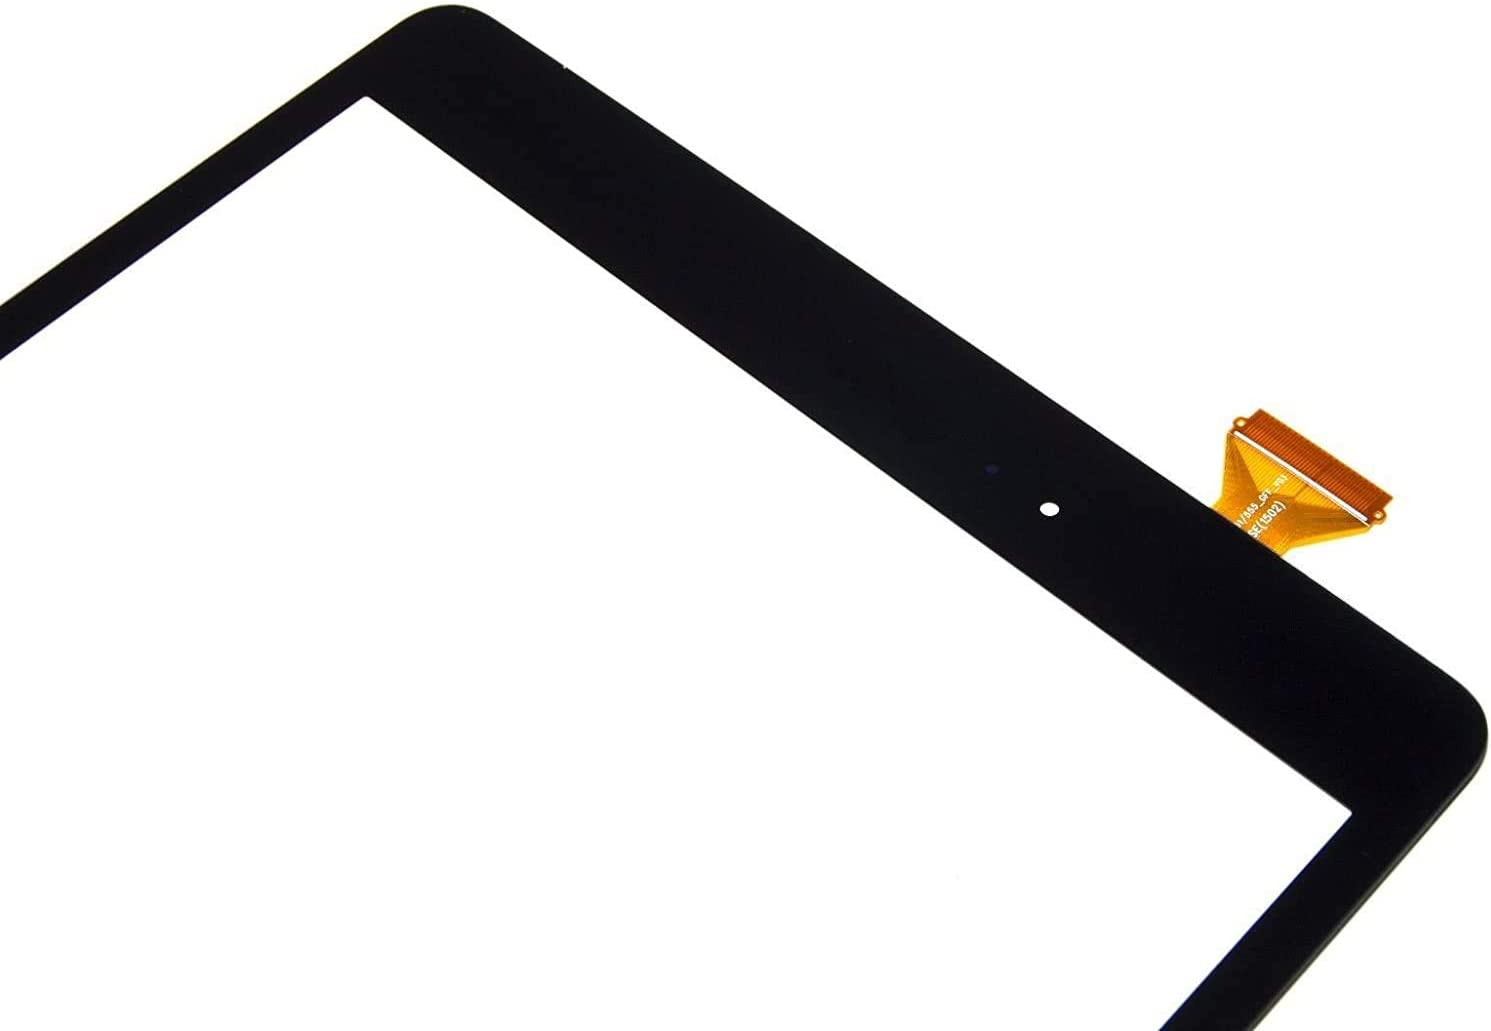 Not Include LCD Black Touch Screen Replacement for Samsung Galaxy Tab A 9.7 inch Digitizer Glass Assembly for SM-T550 SM-T555 T550 T555 WithTools,Pre-Installed Adhesive